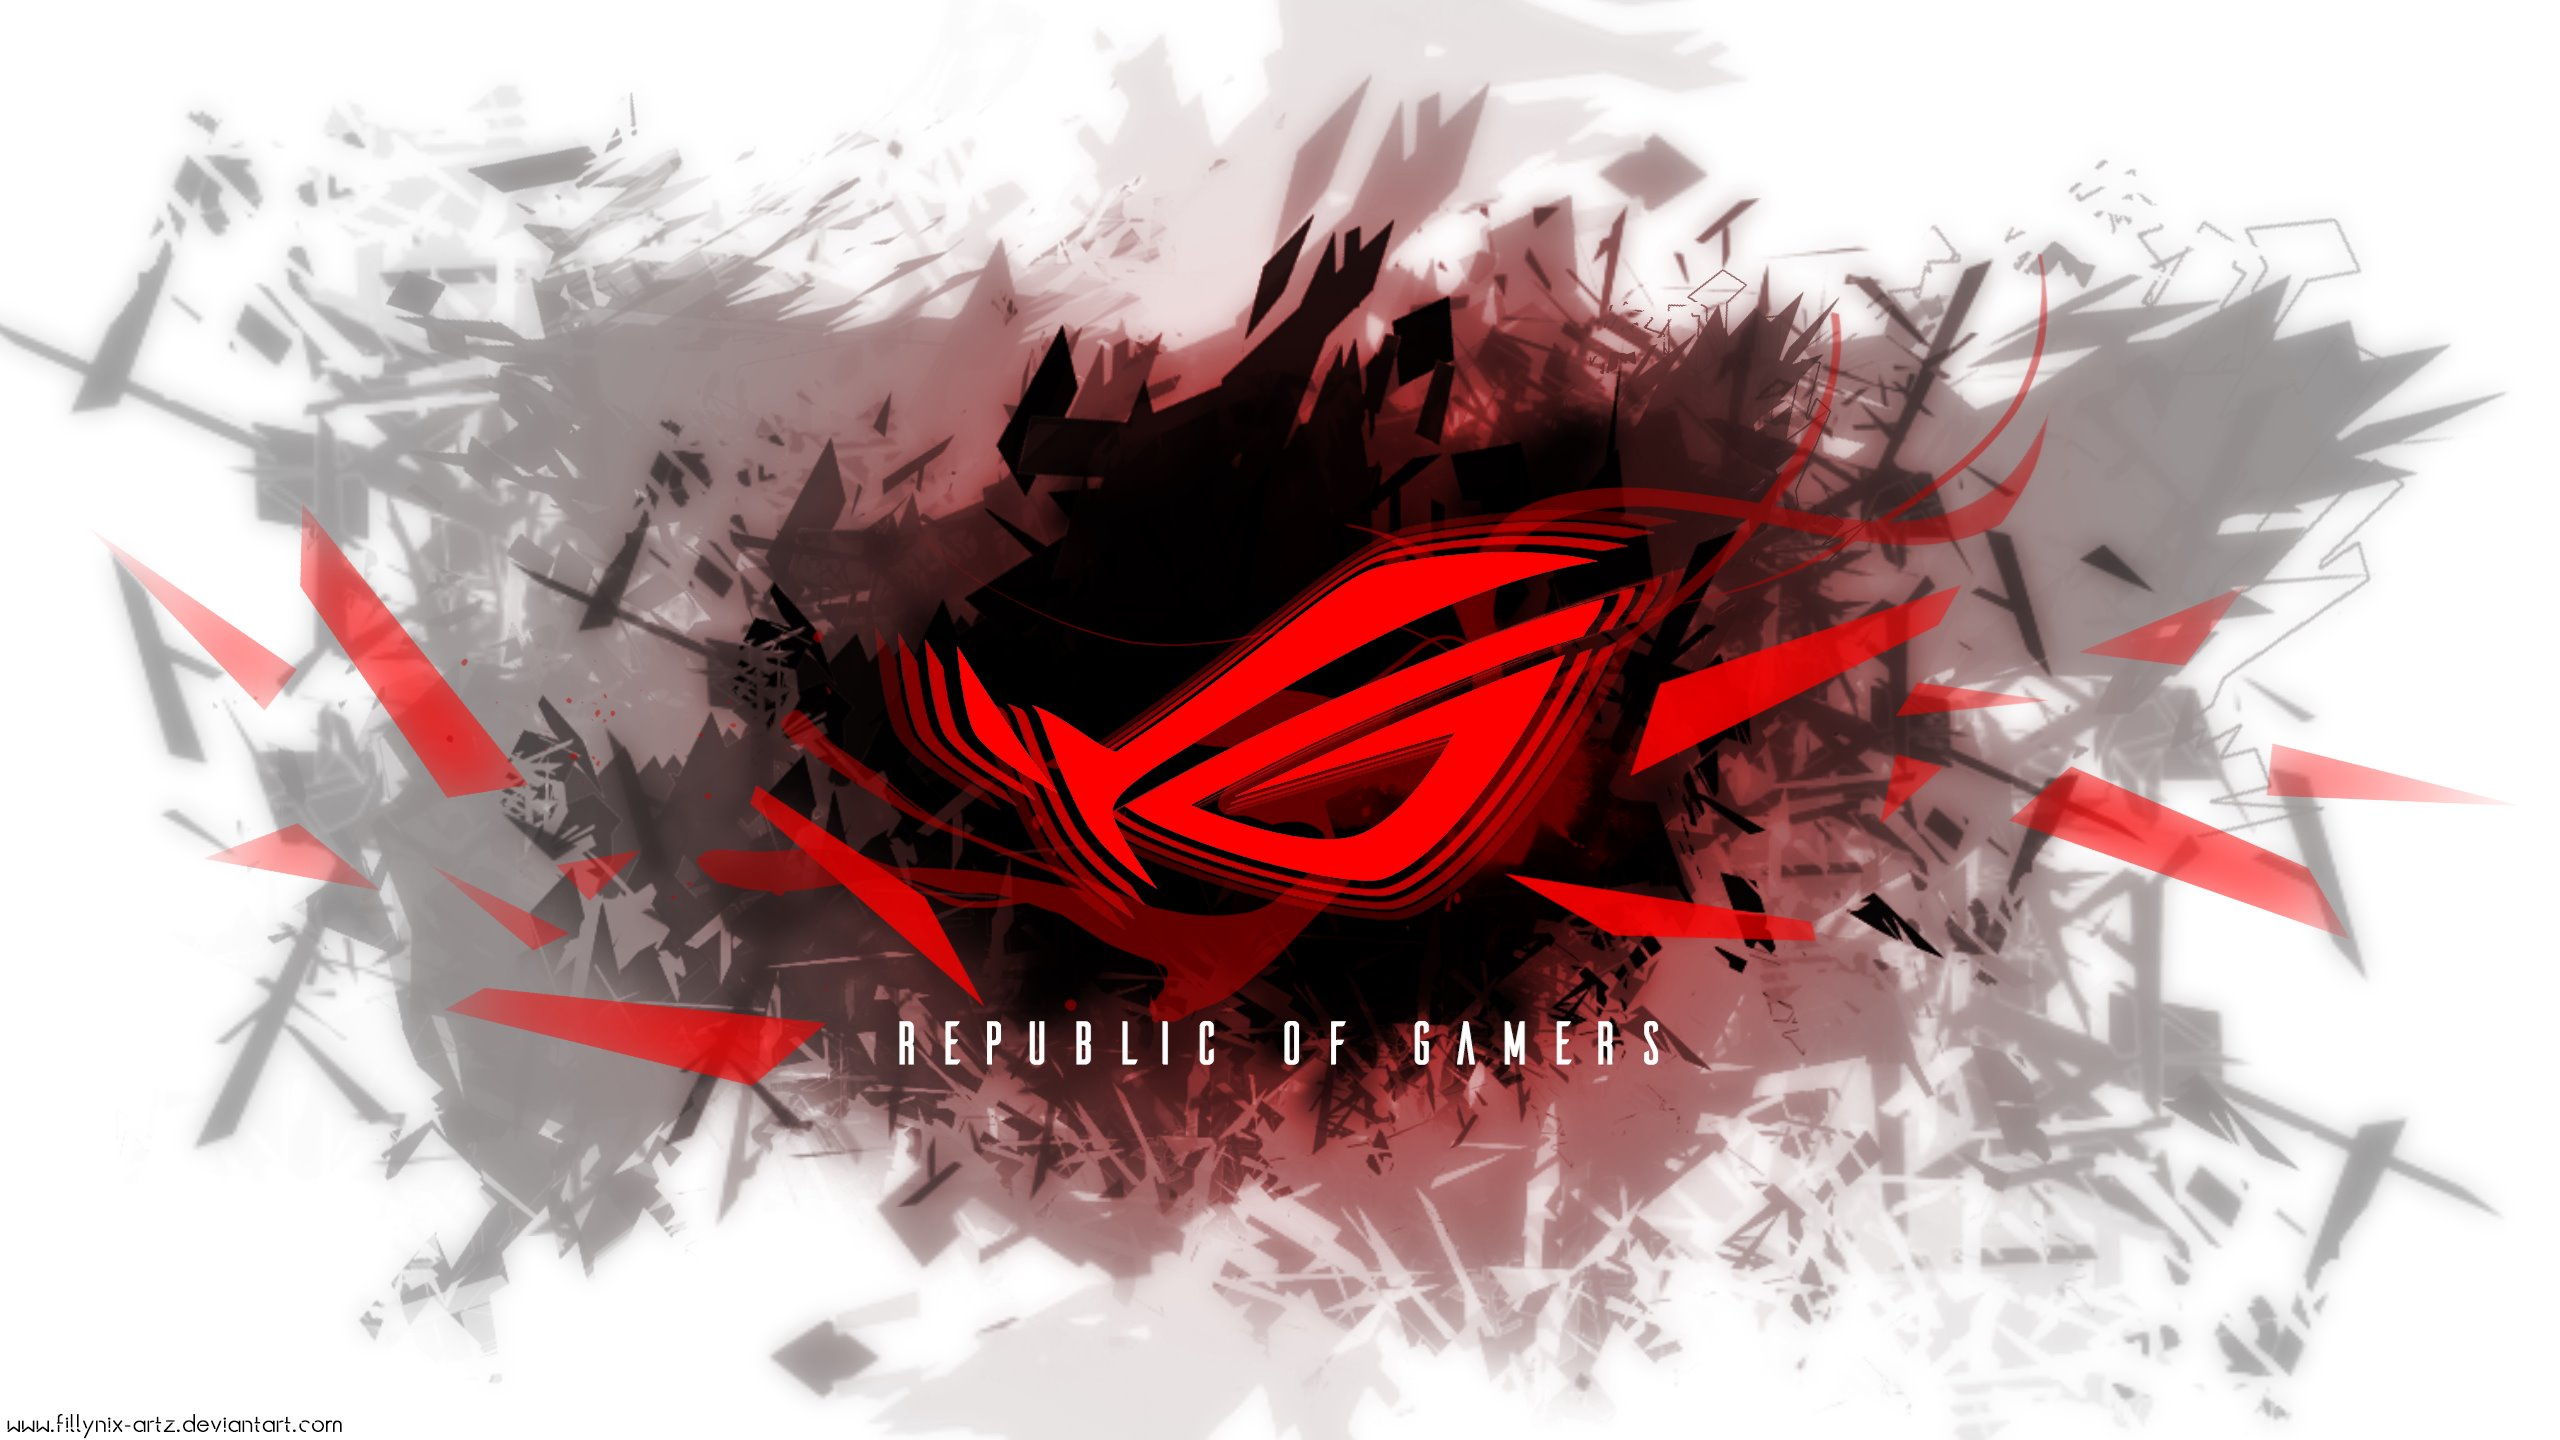 Asus Mobile Wallpaper: Republic Of Gamers Wallpapers By FillyNix Artz On